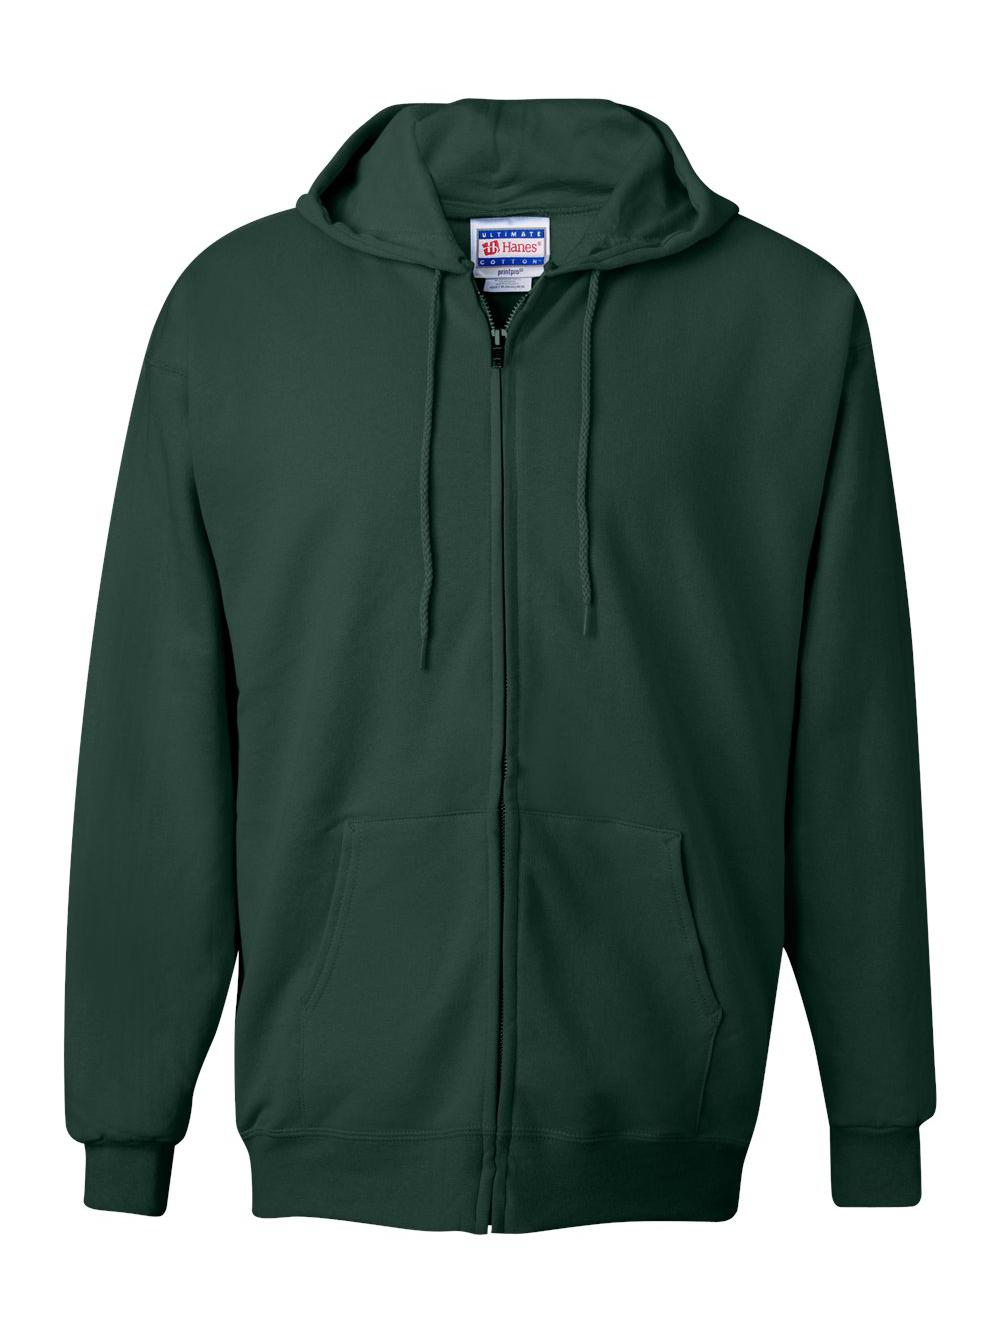 Hanes-Ultimate-Cotton-Full-Zip-Hooded-Sweatshirt-F280 thumbnail 9